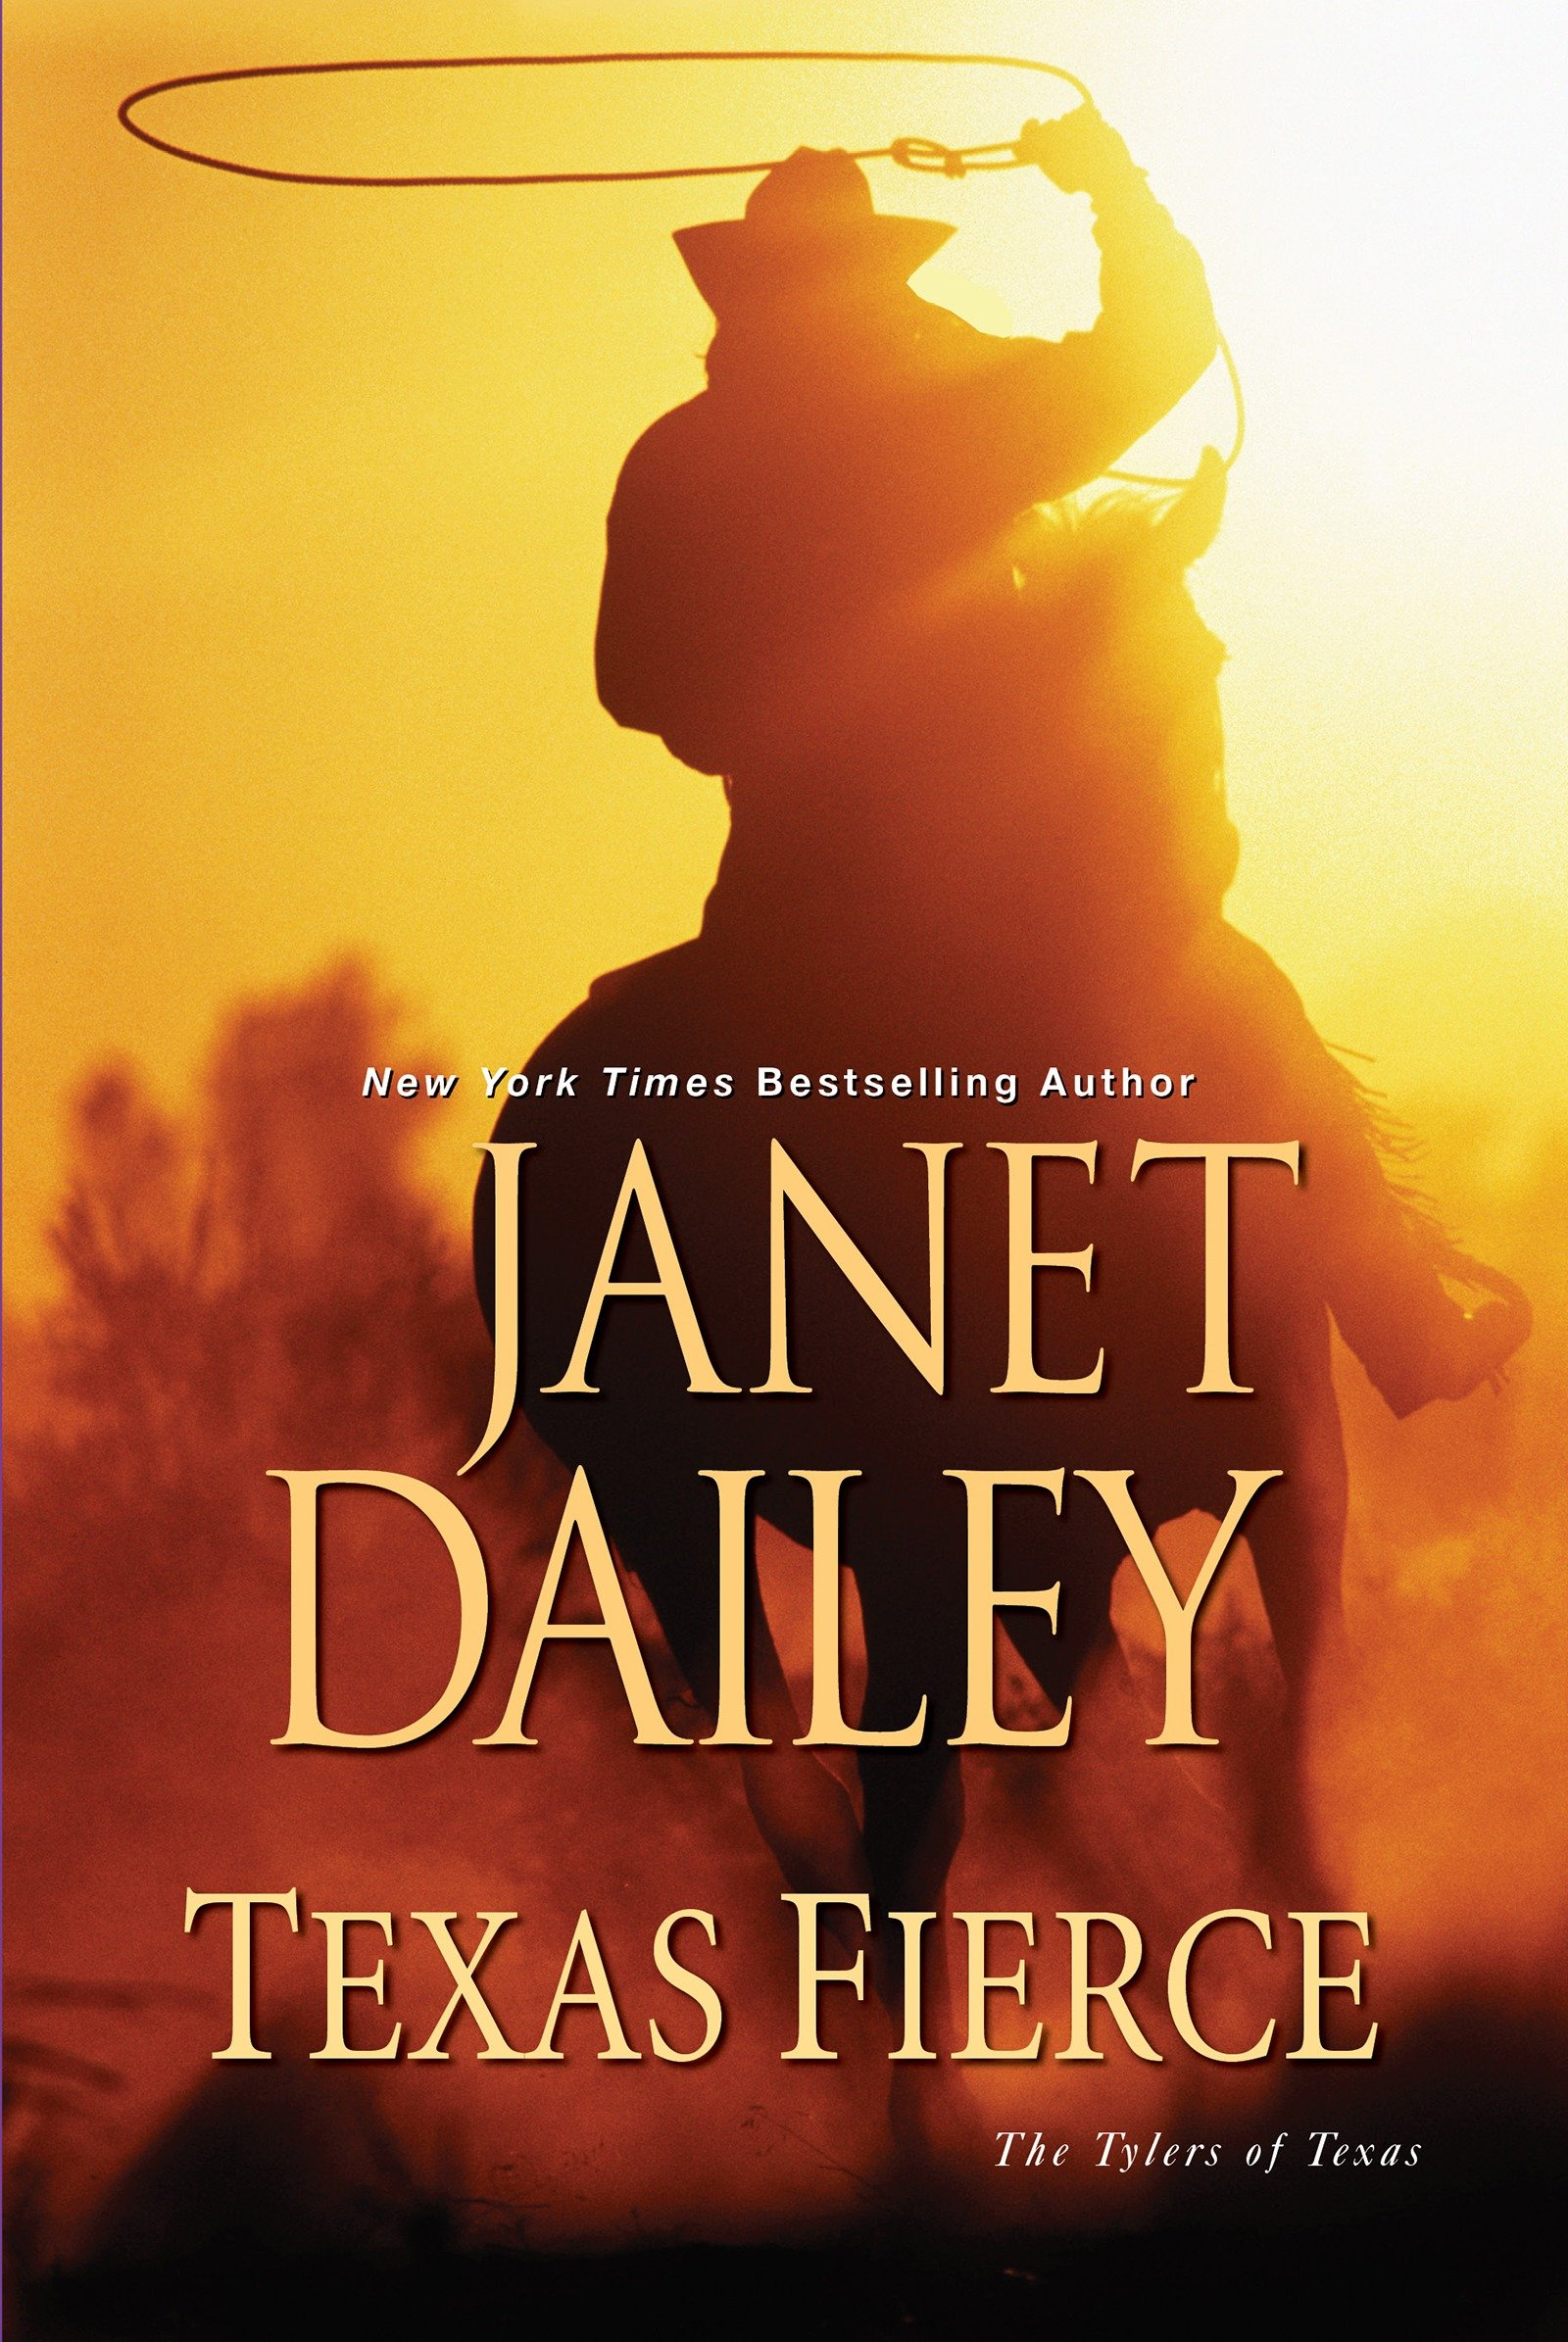 Texas fierce cover image